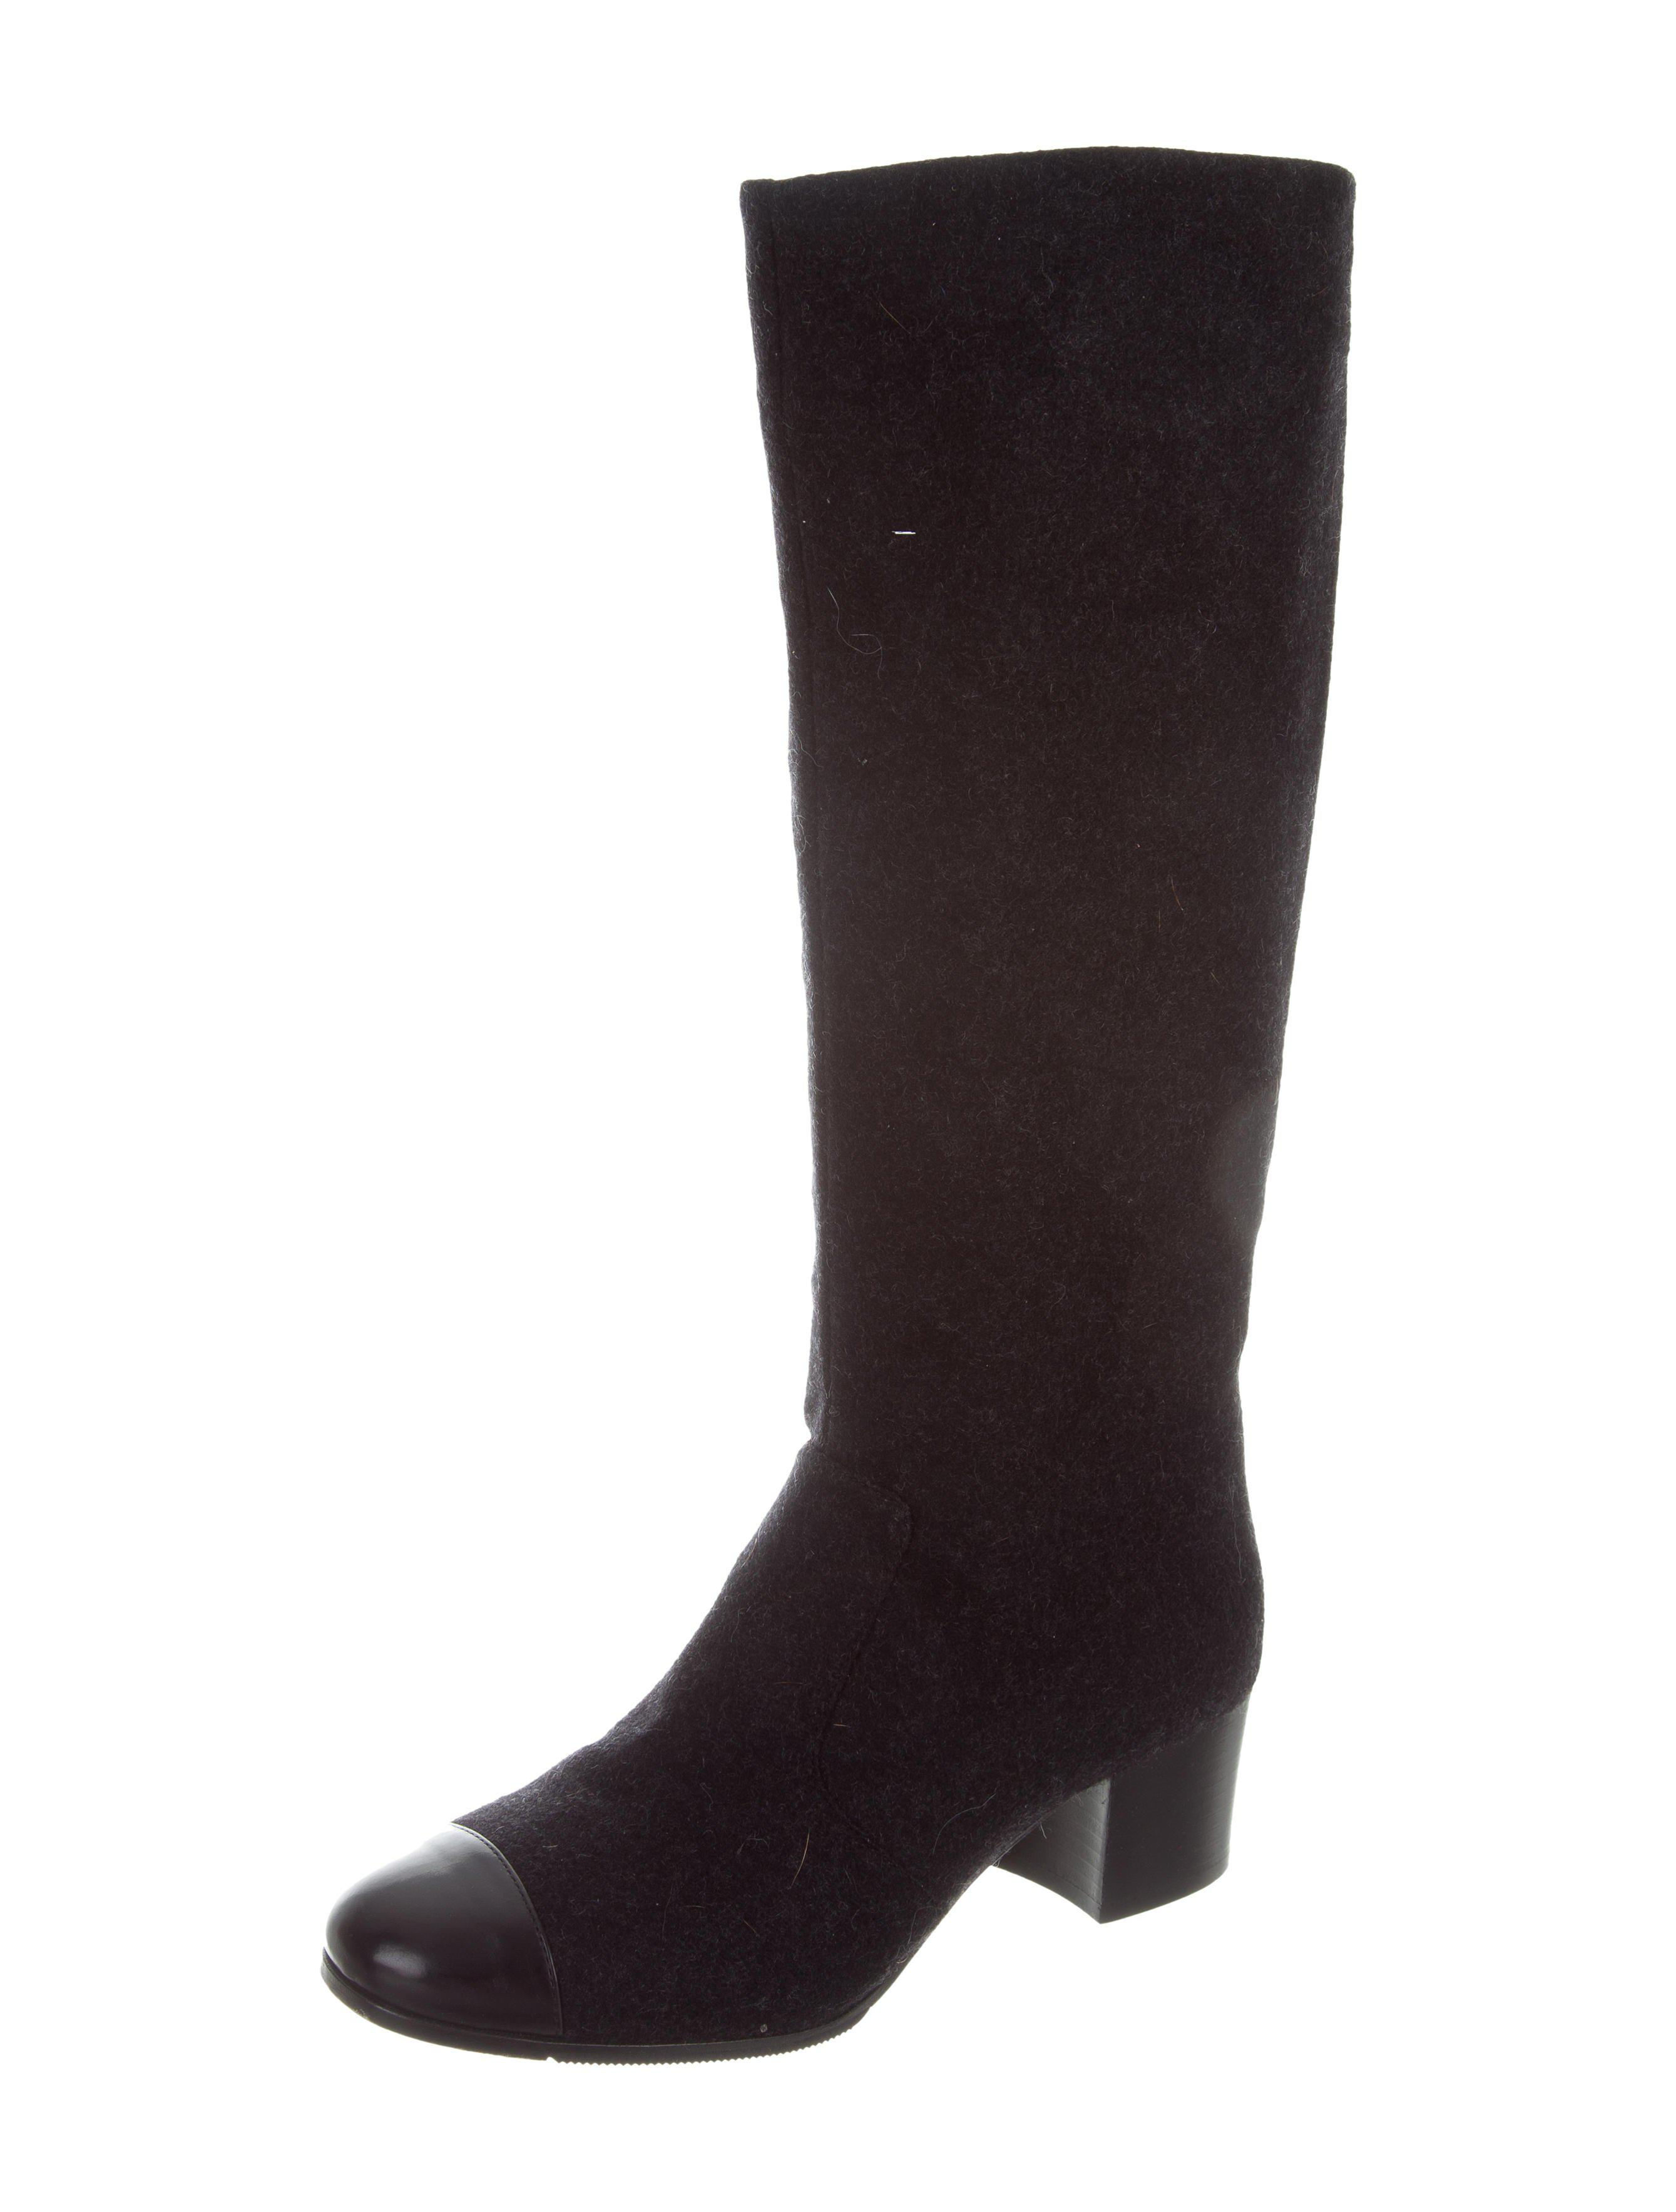 chanel knee high boots. gallery chanel knee high boots s